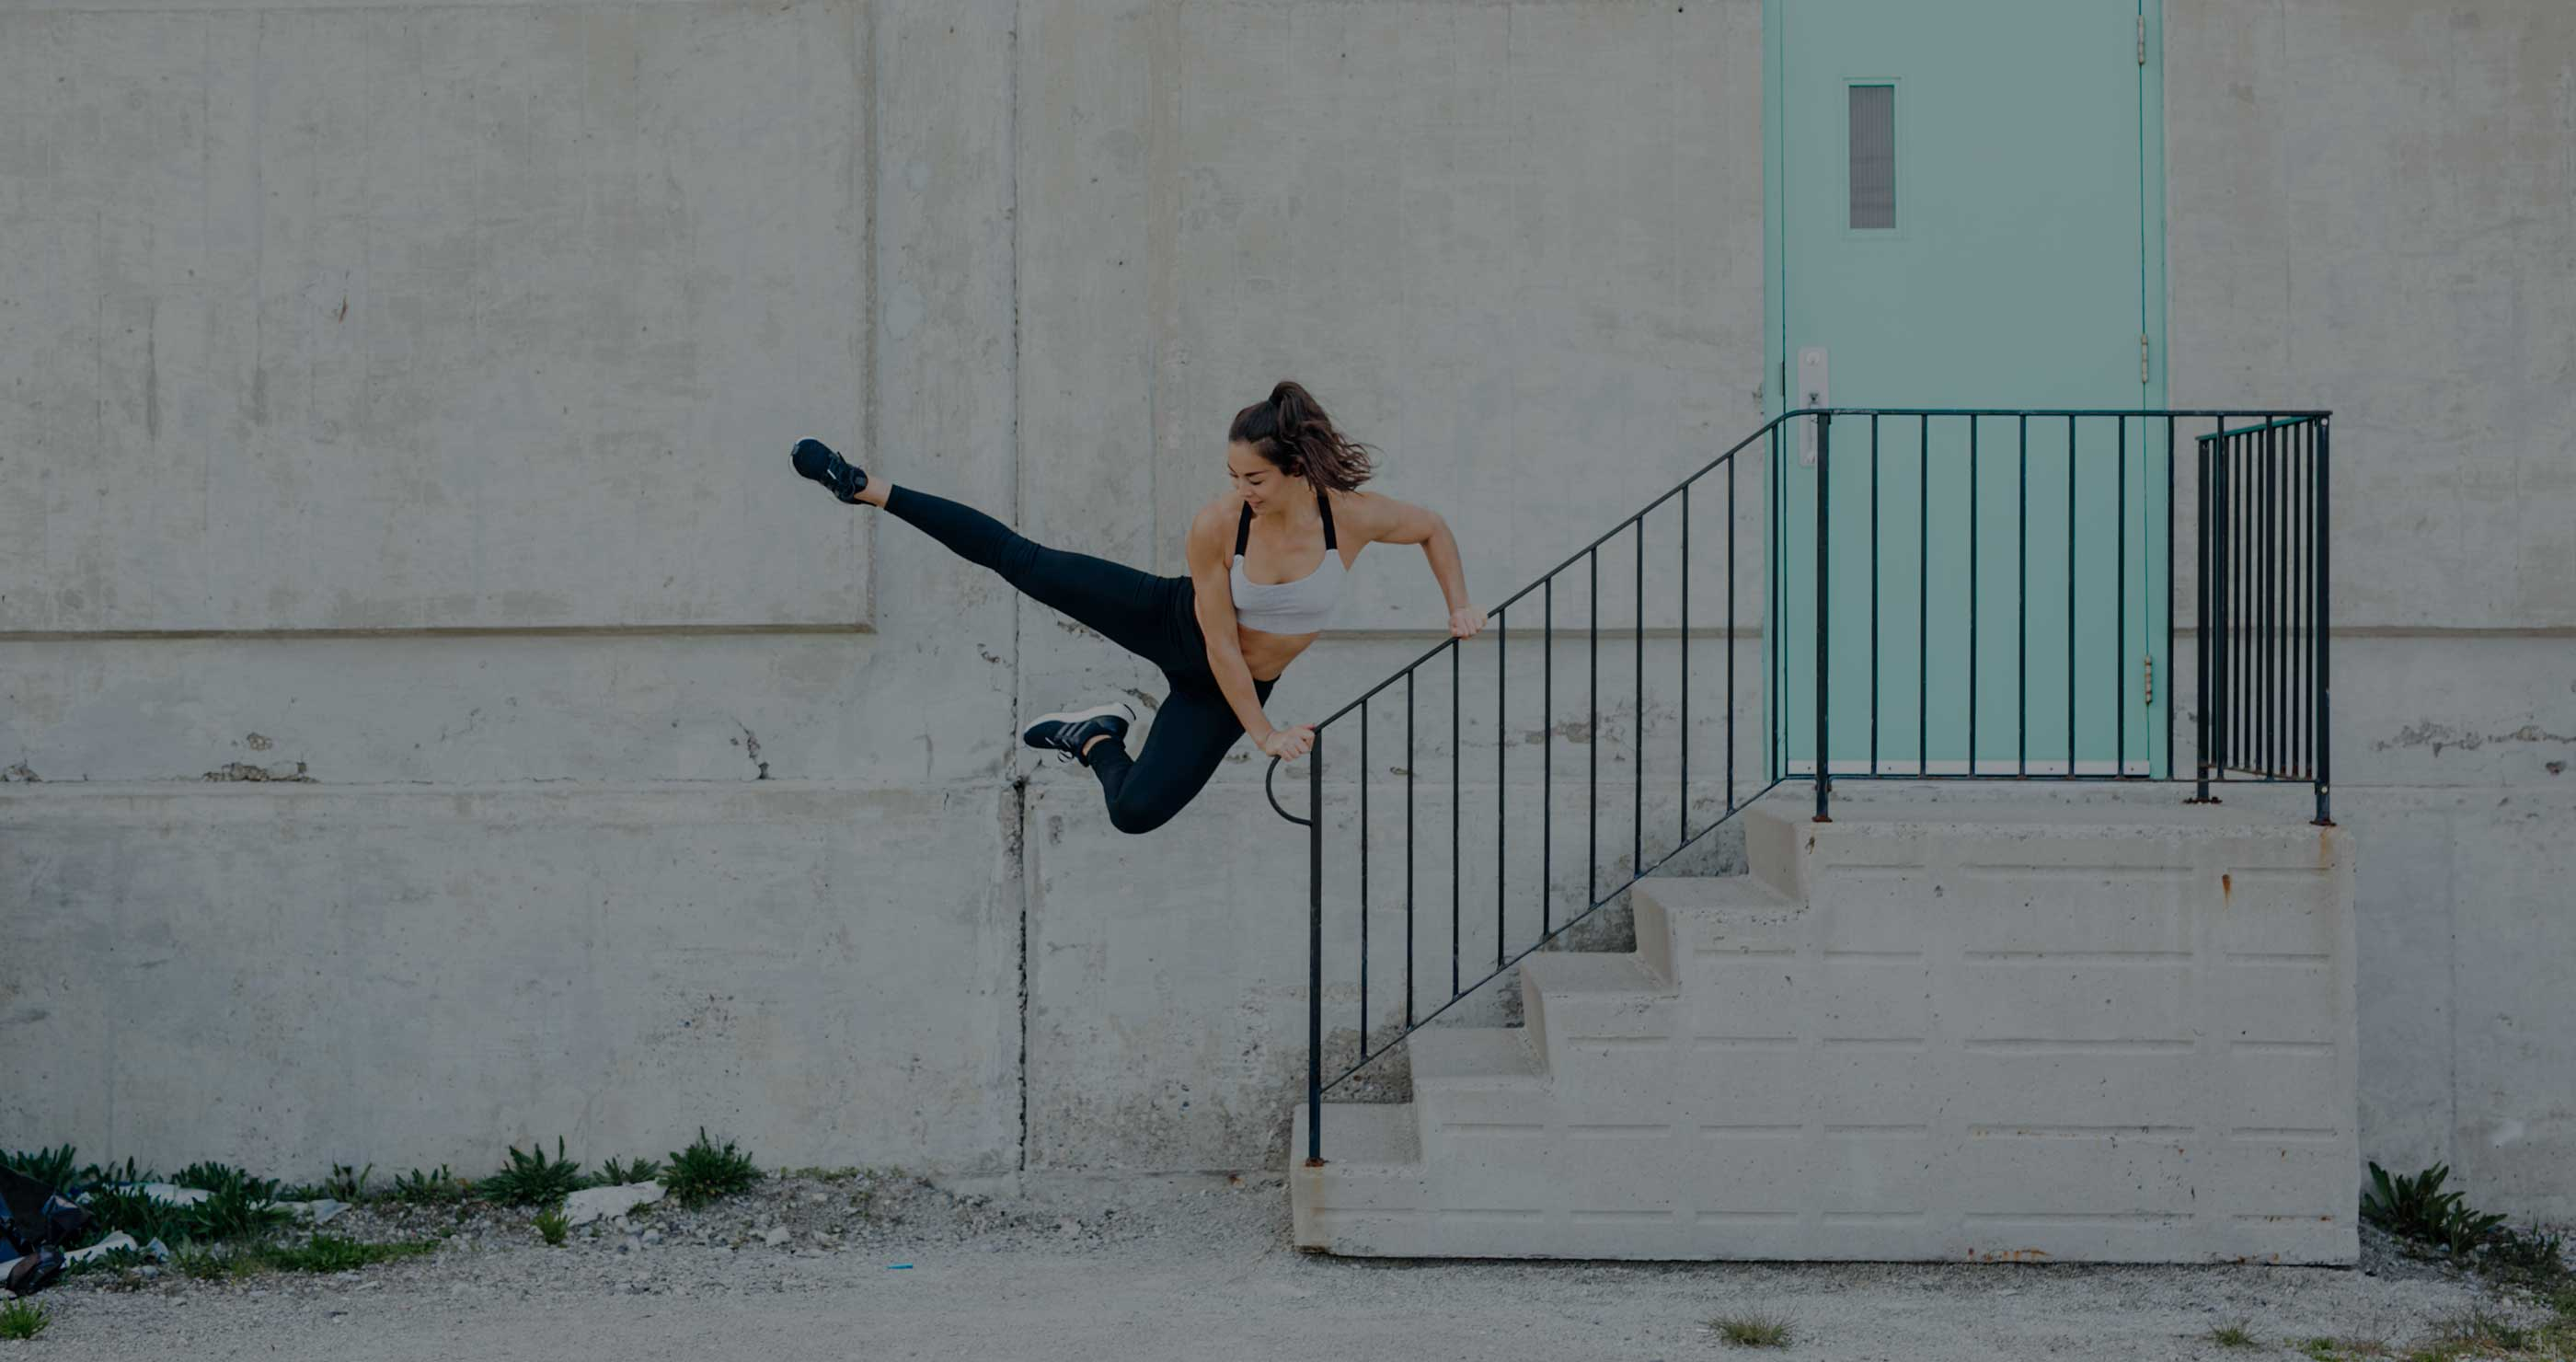 Beverly Cheng from Born to Sweat holding on to a railing while lifting both feet up in the air